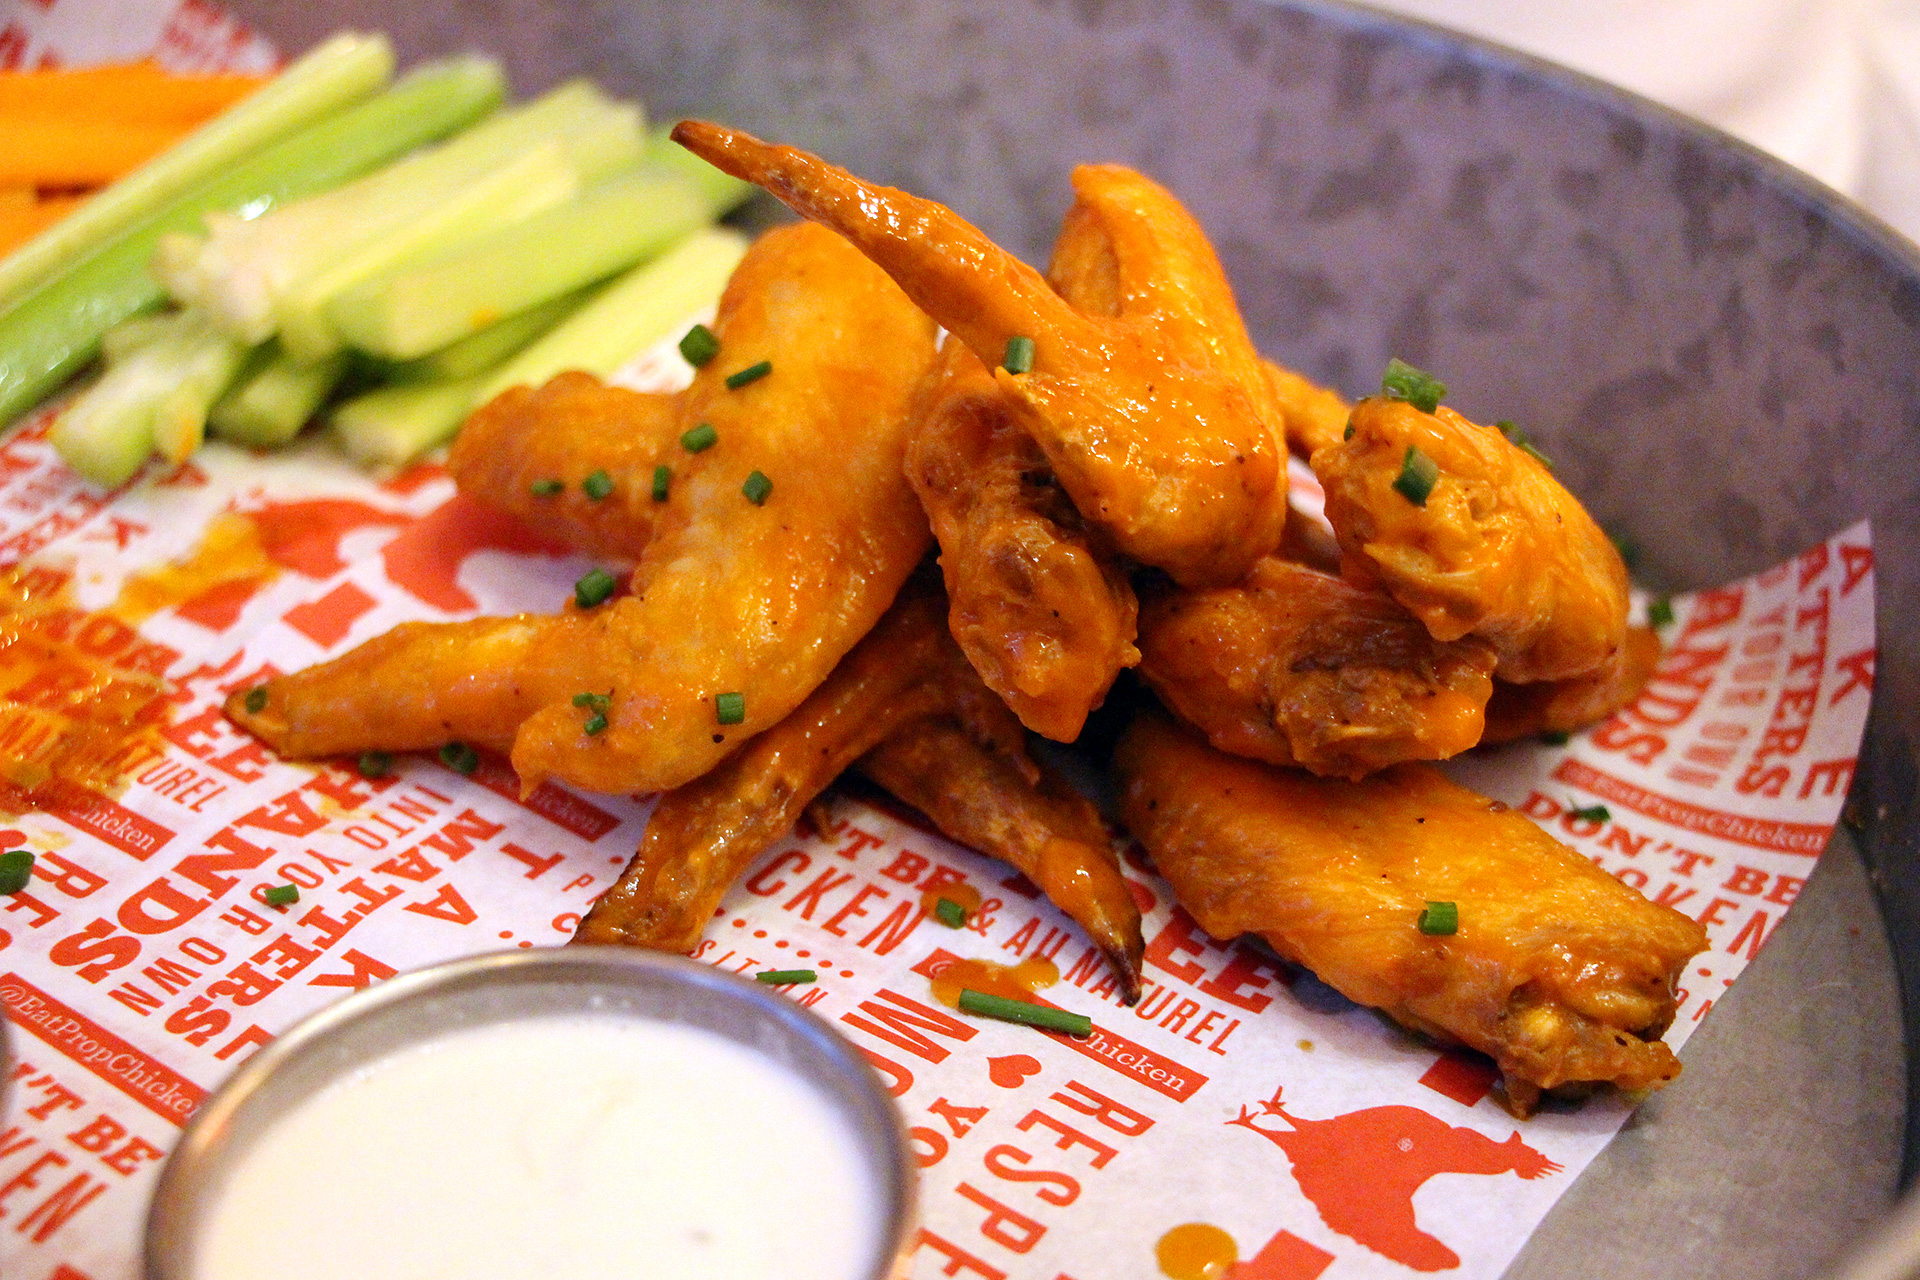 The buffalo wings at Proposition Chicken